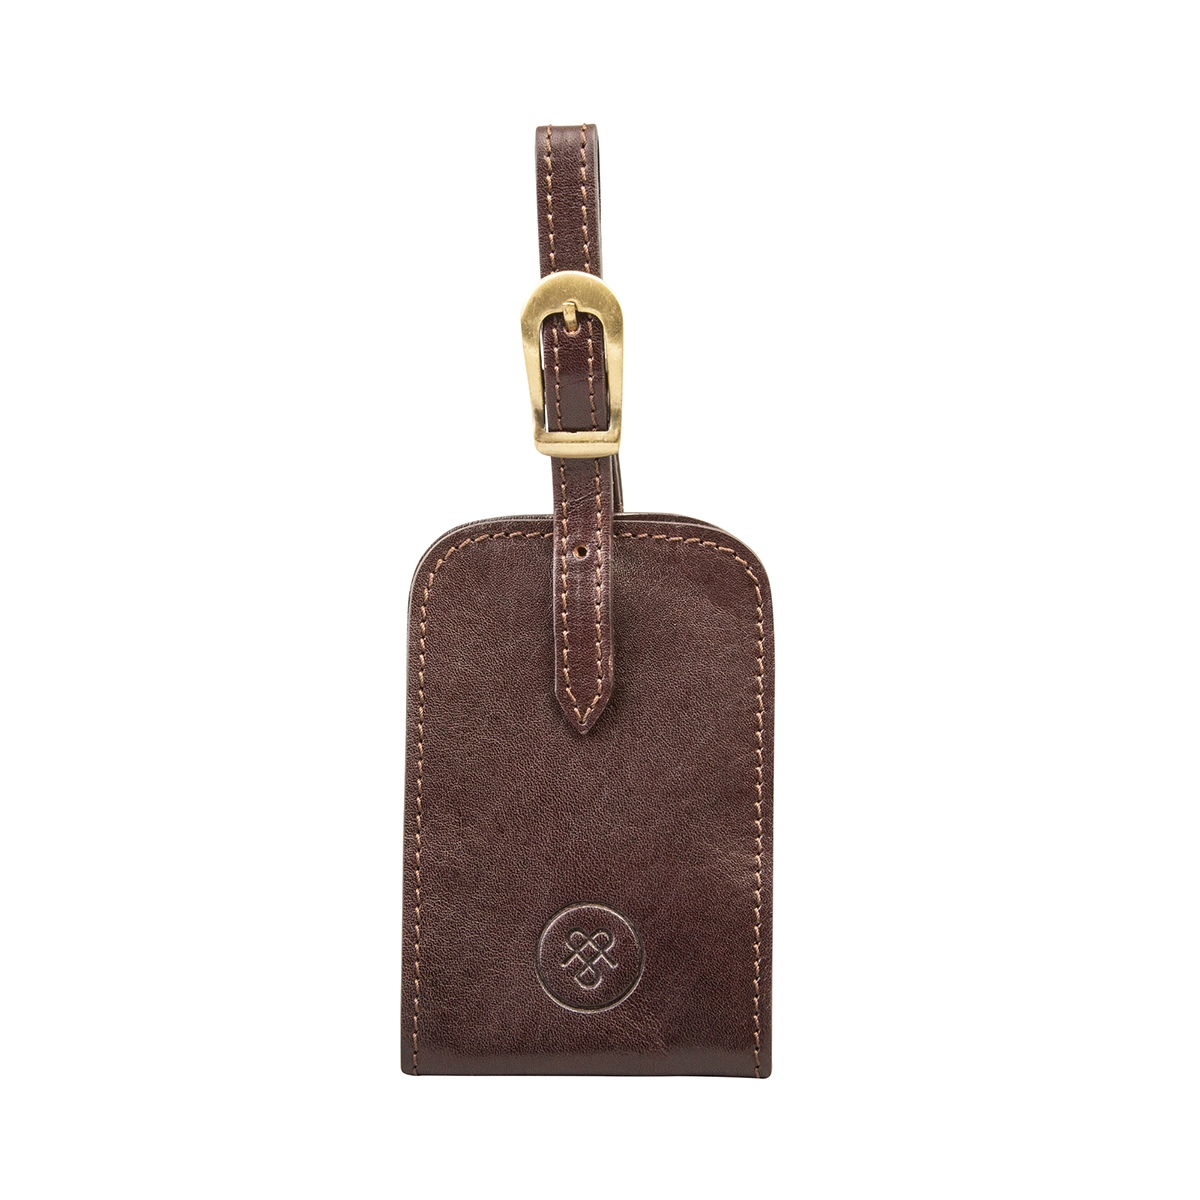 MAXWELL SCOTT BAGS Classic Italian Crafted Brown Leather Luggage Tag